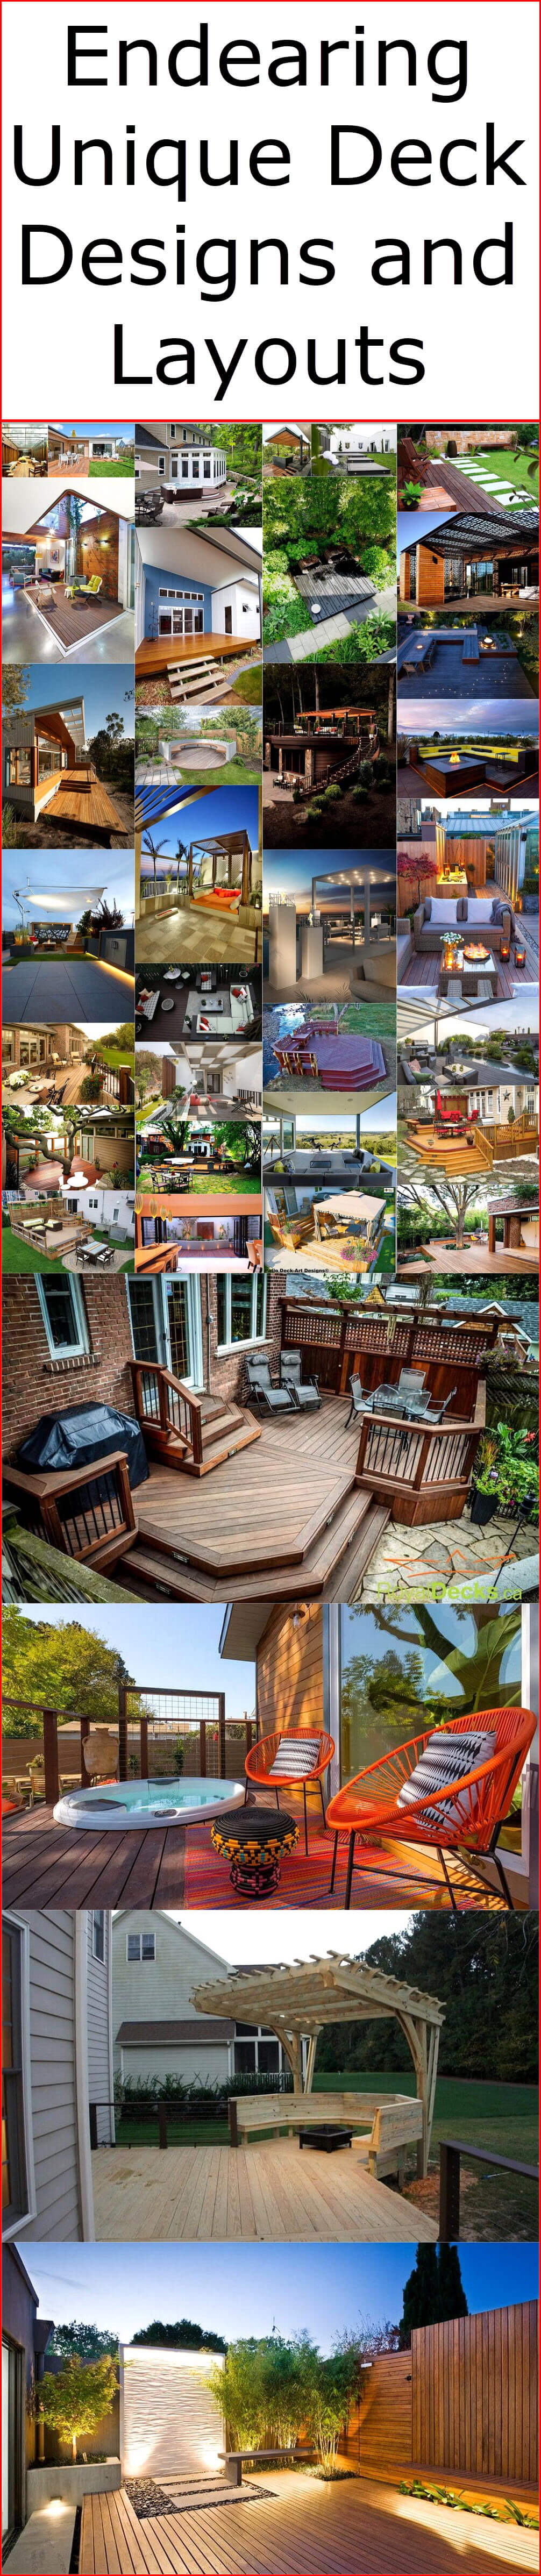 Endearing Unique Deck Designs and Layouts